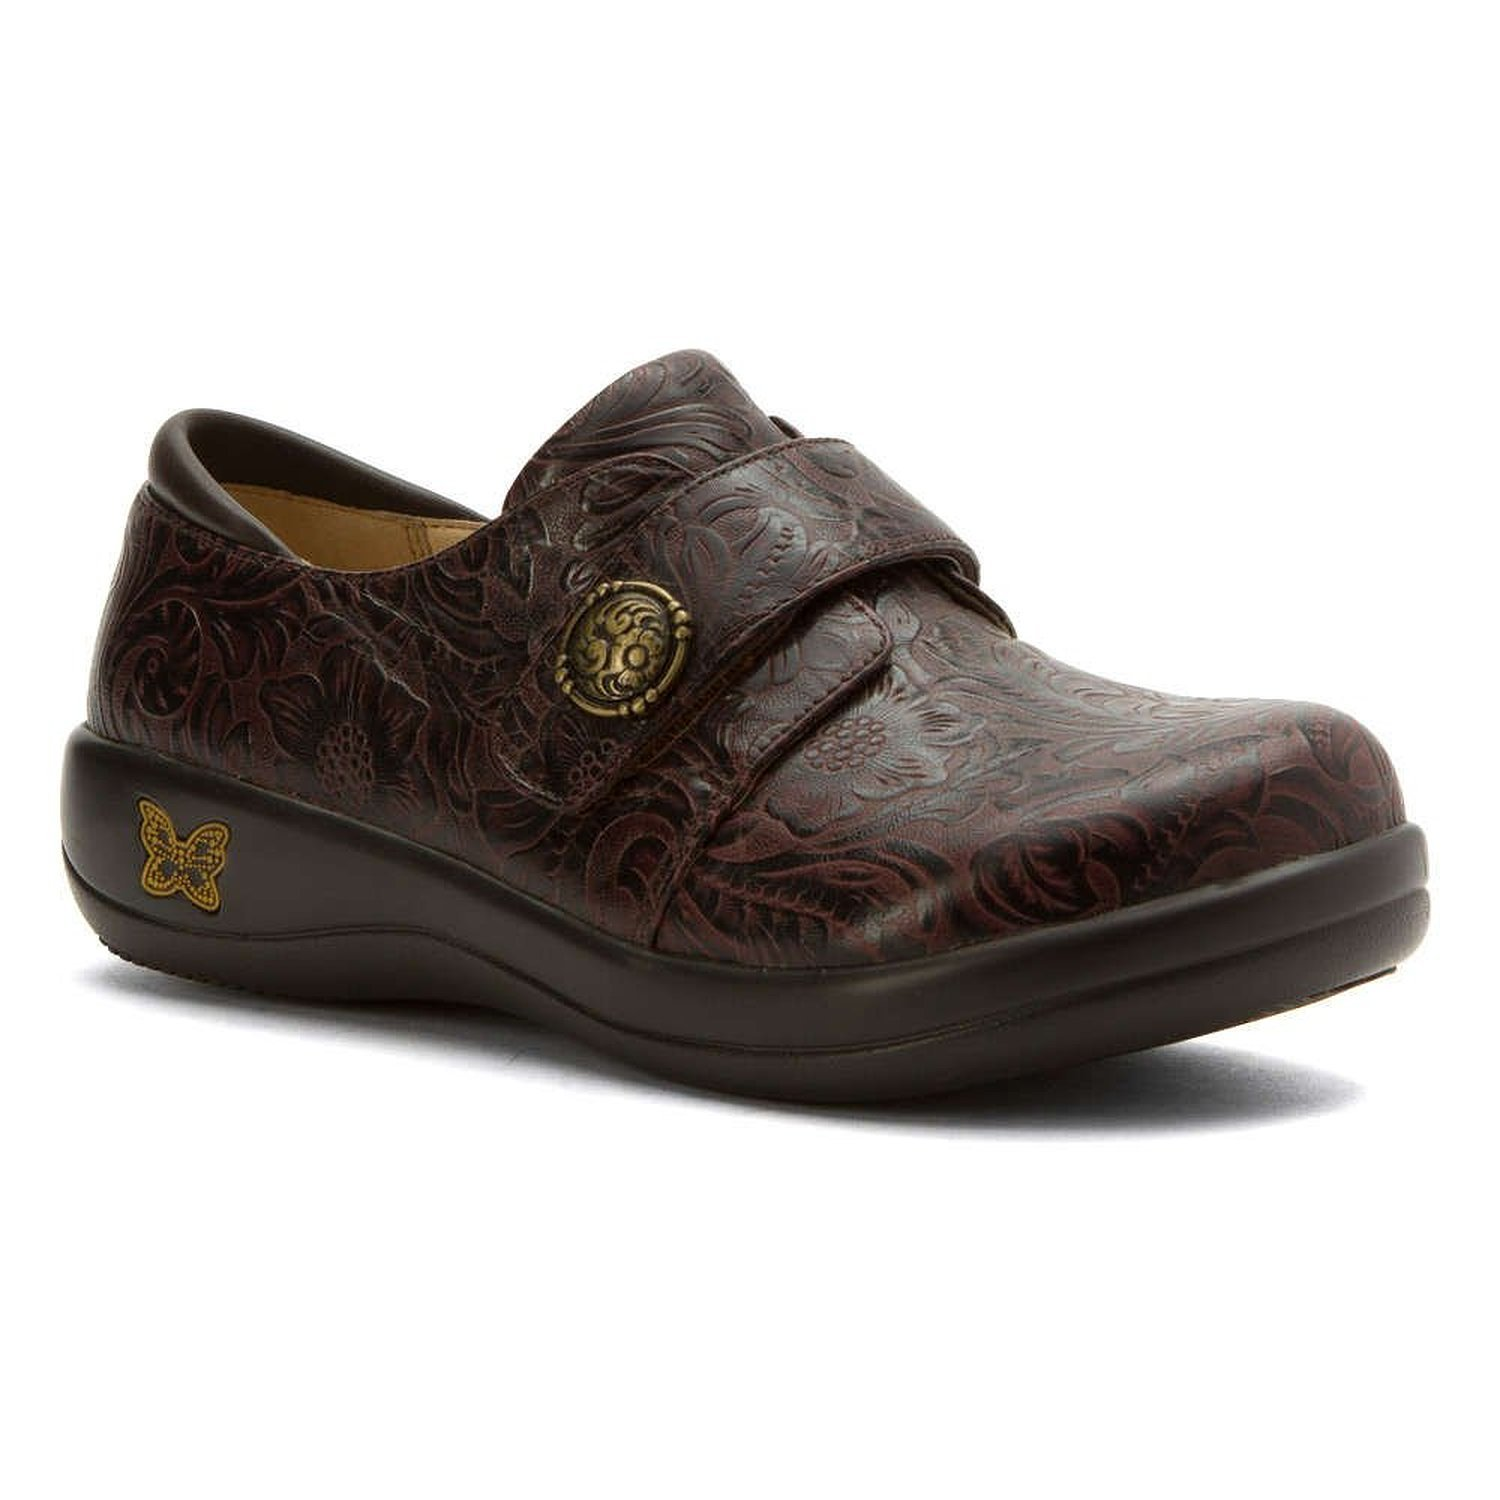 Alegria Joleen Women's Slip On 42 M EU Molasses